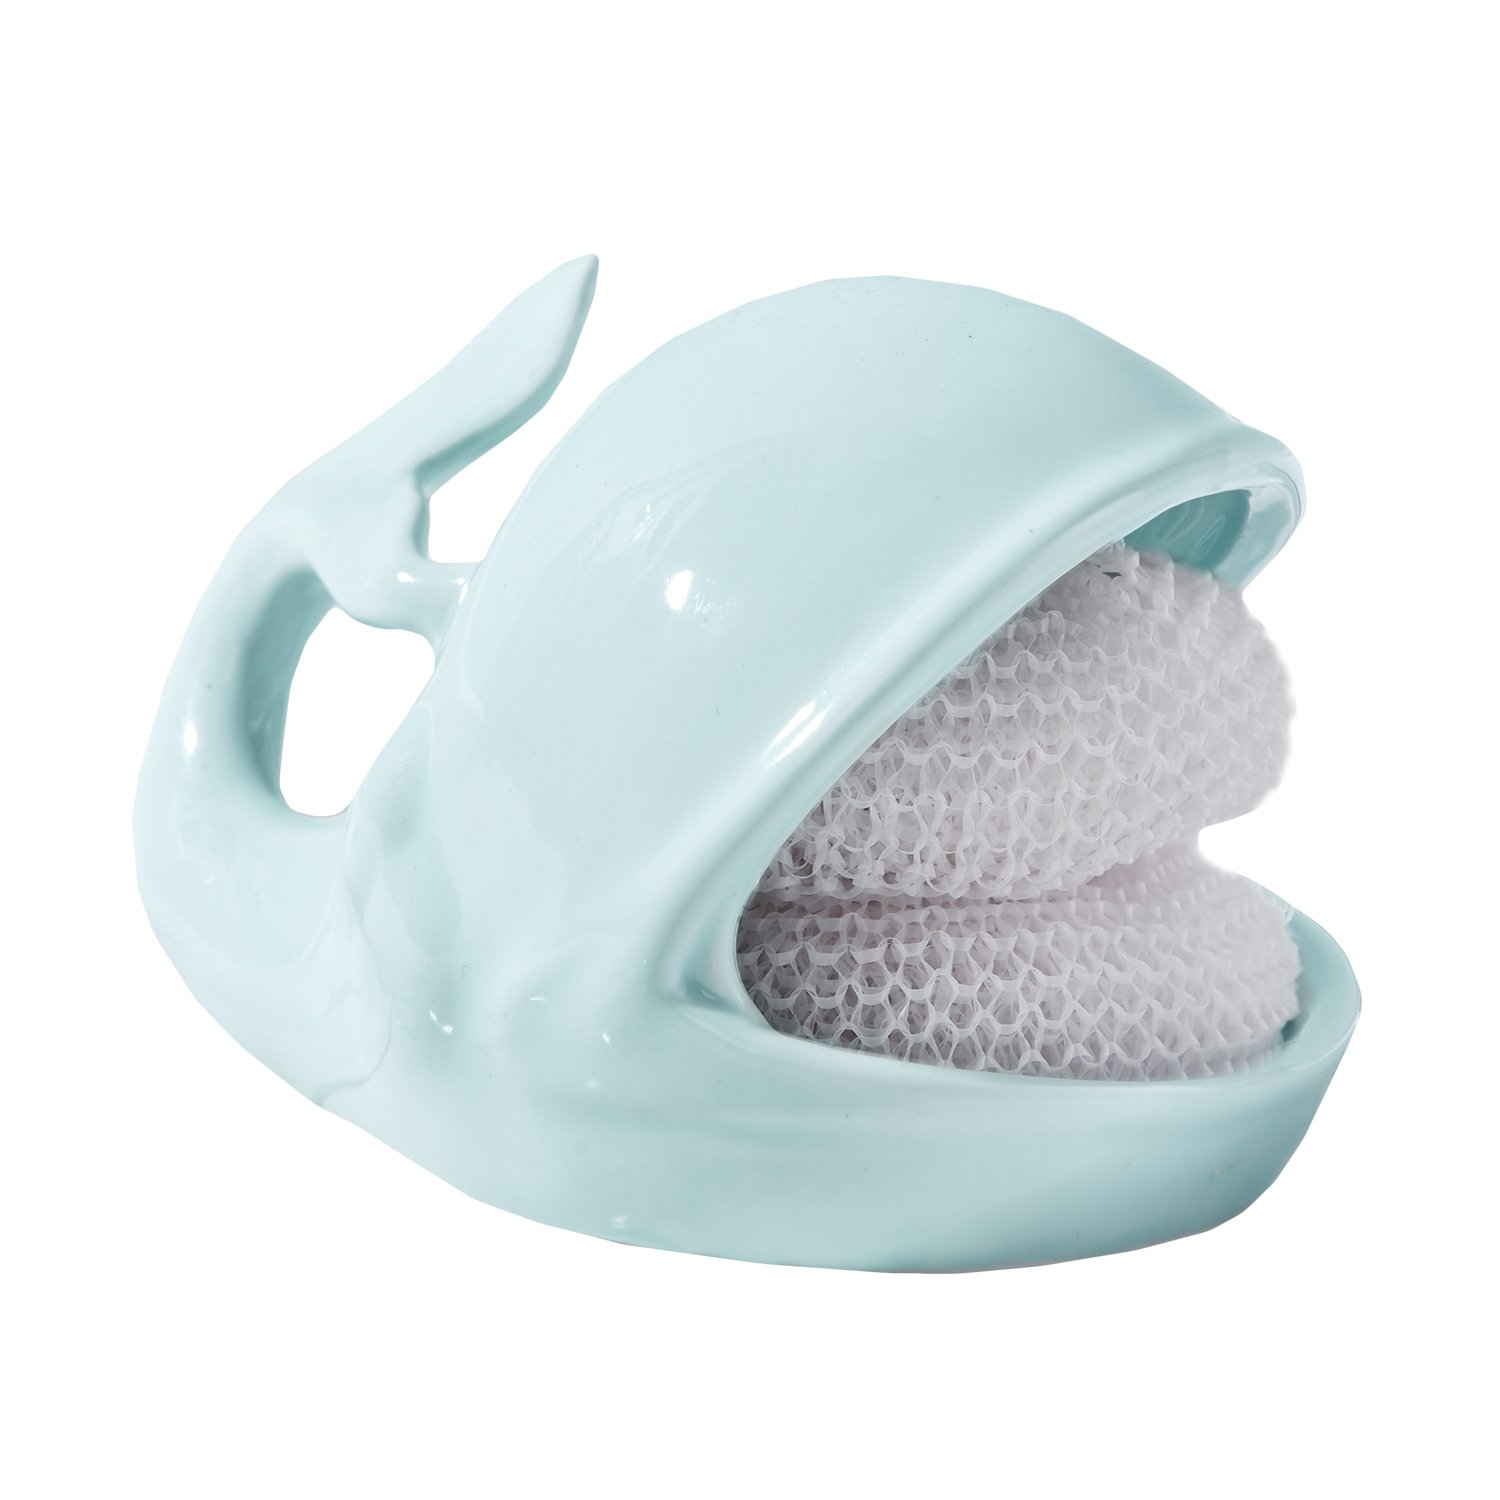 Two's Company 51216 Willy the Whale Sponge Holder Set Includes Two Scrubbies, Aqua